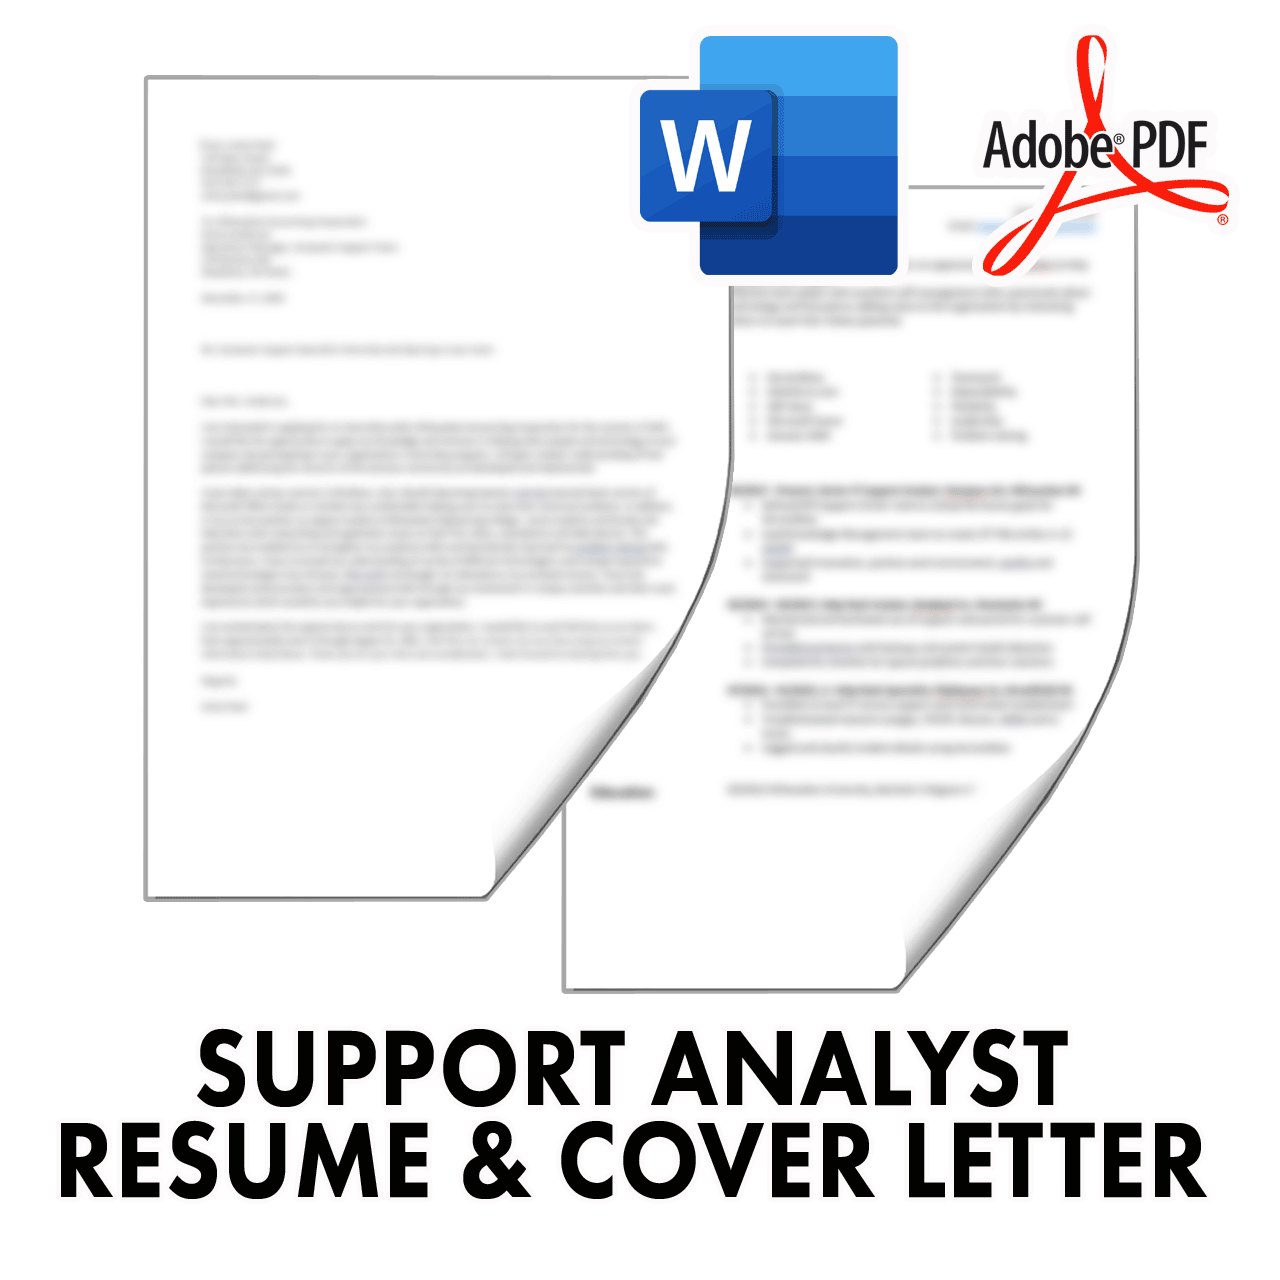 Support Analyst Resume and Cover Letter Templates in Word and PDF